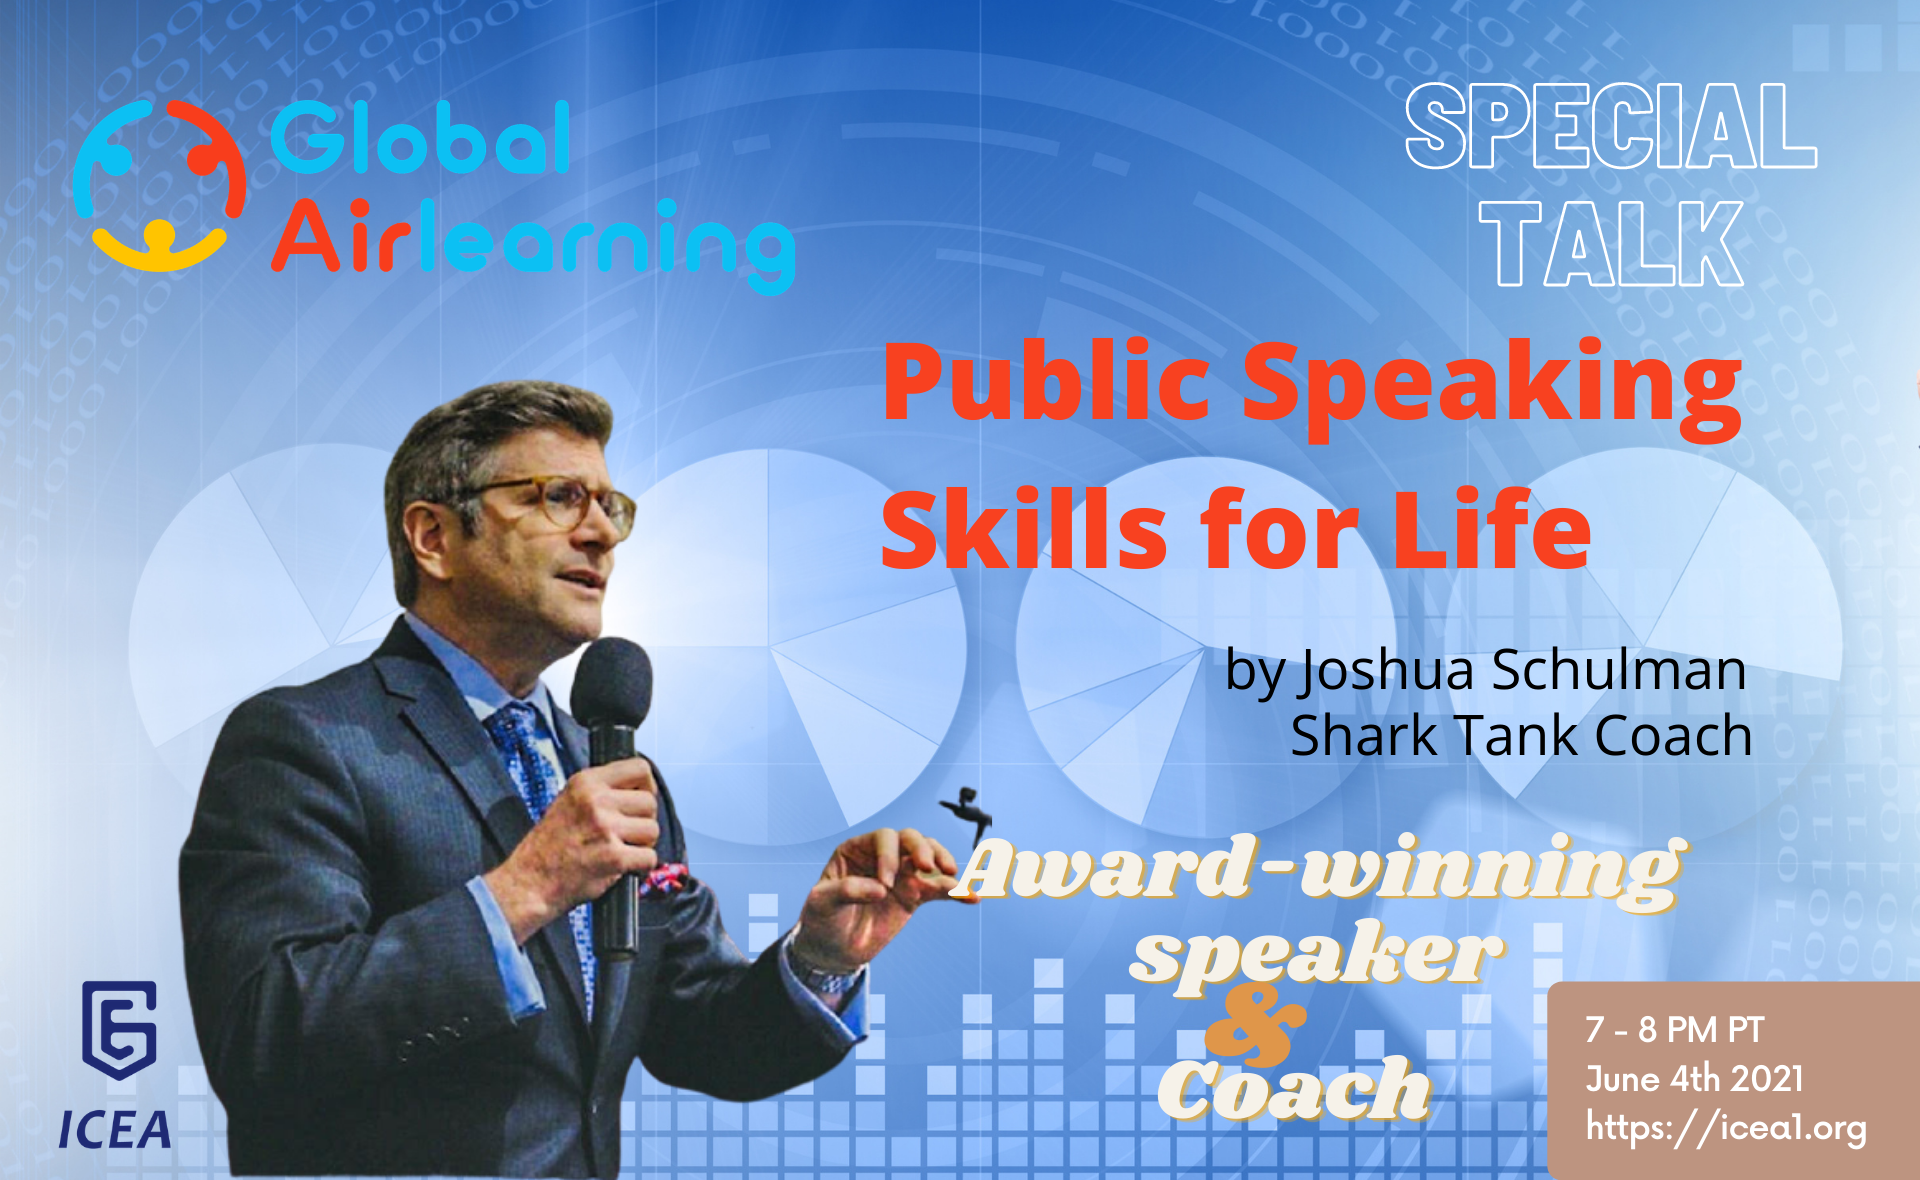 [Global AirLearning Special Talk] Public Speaking Skills for Life